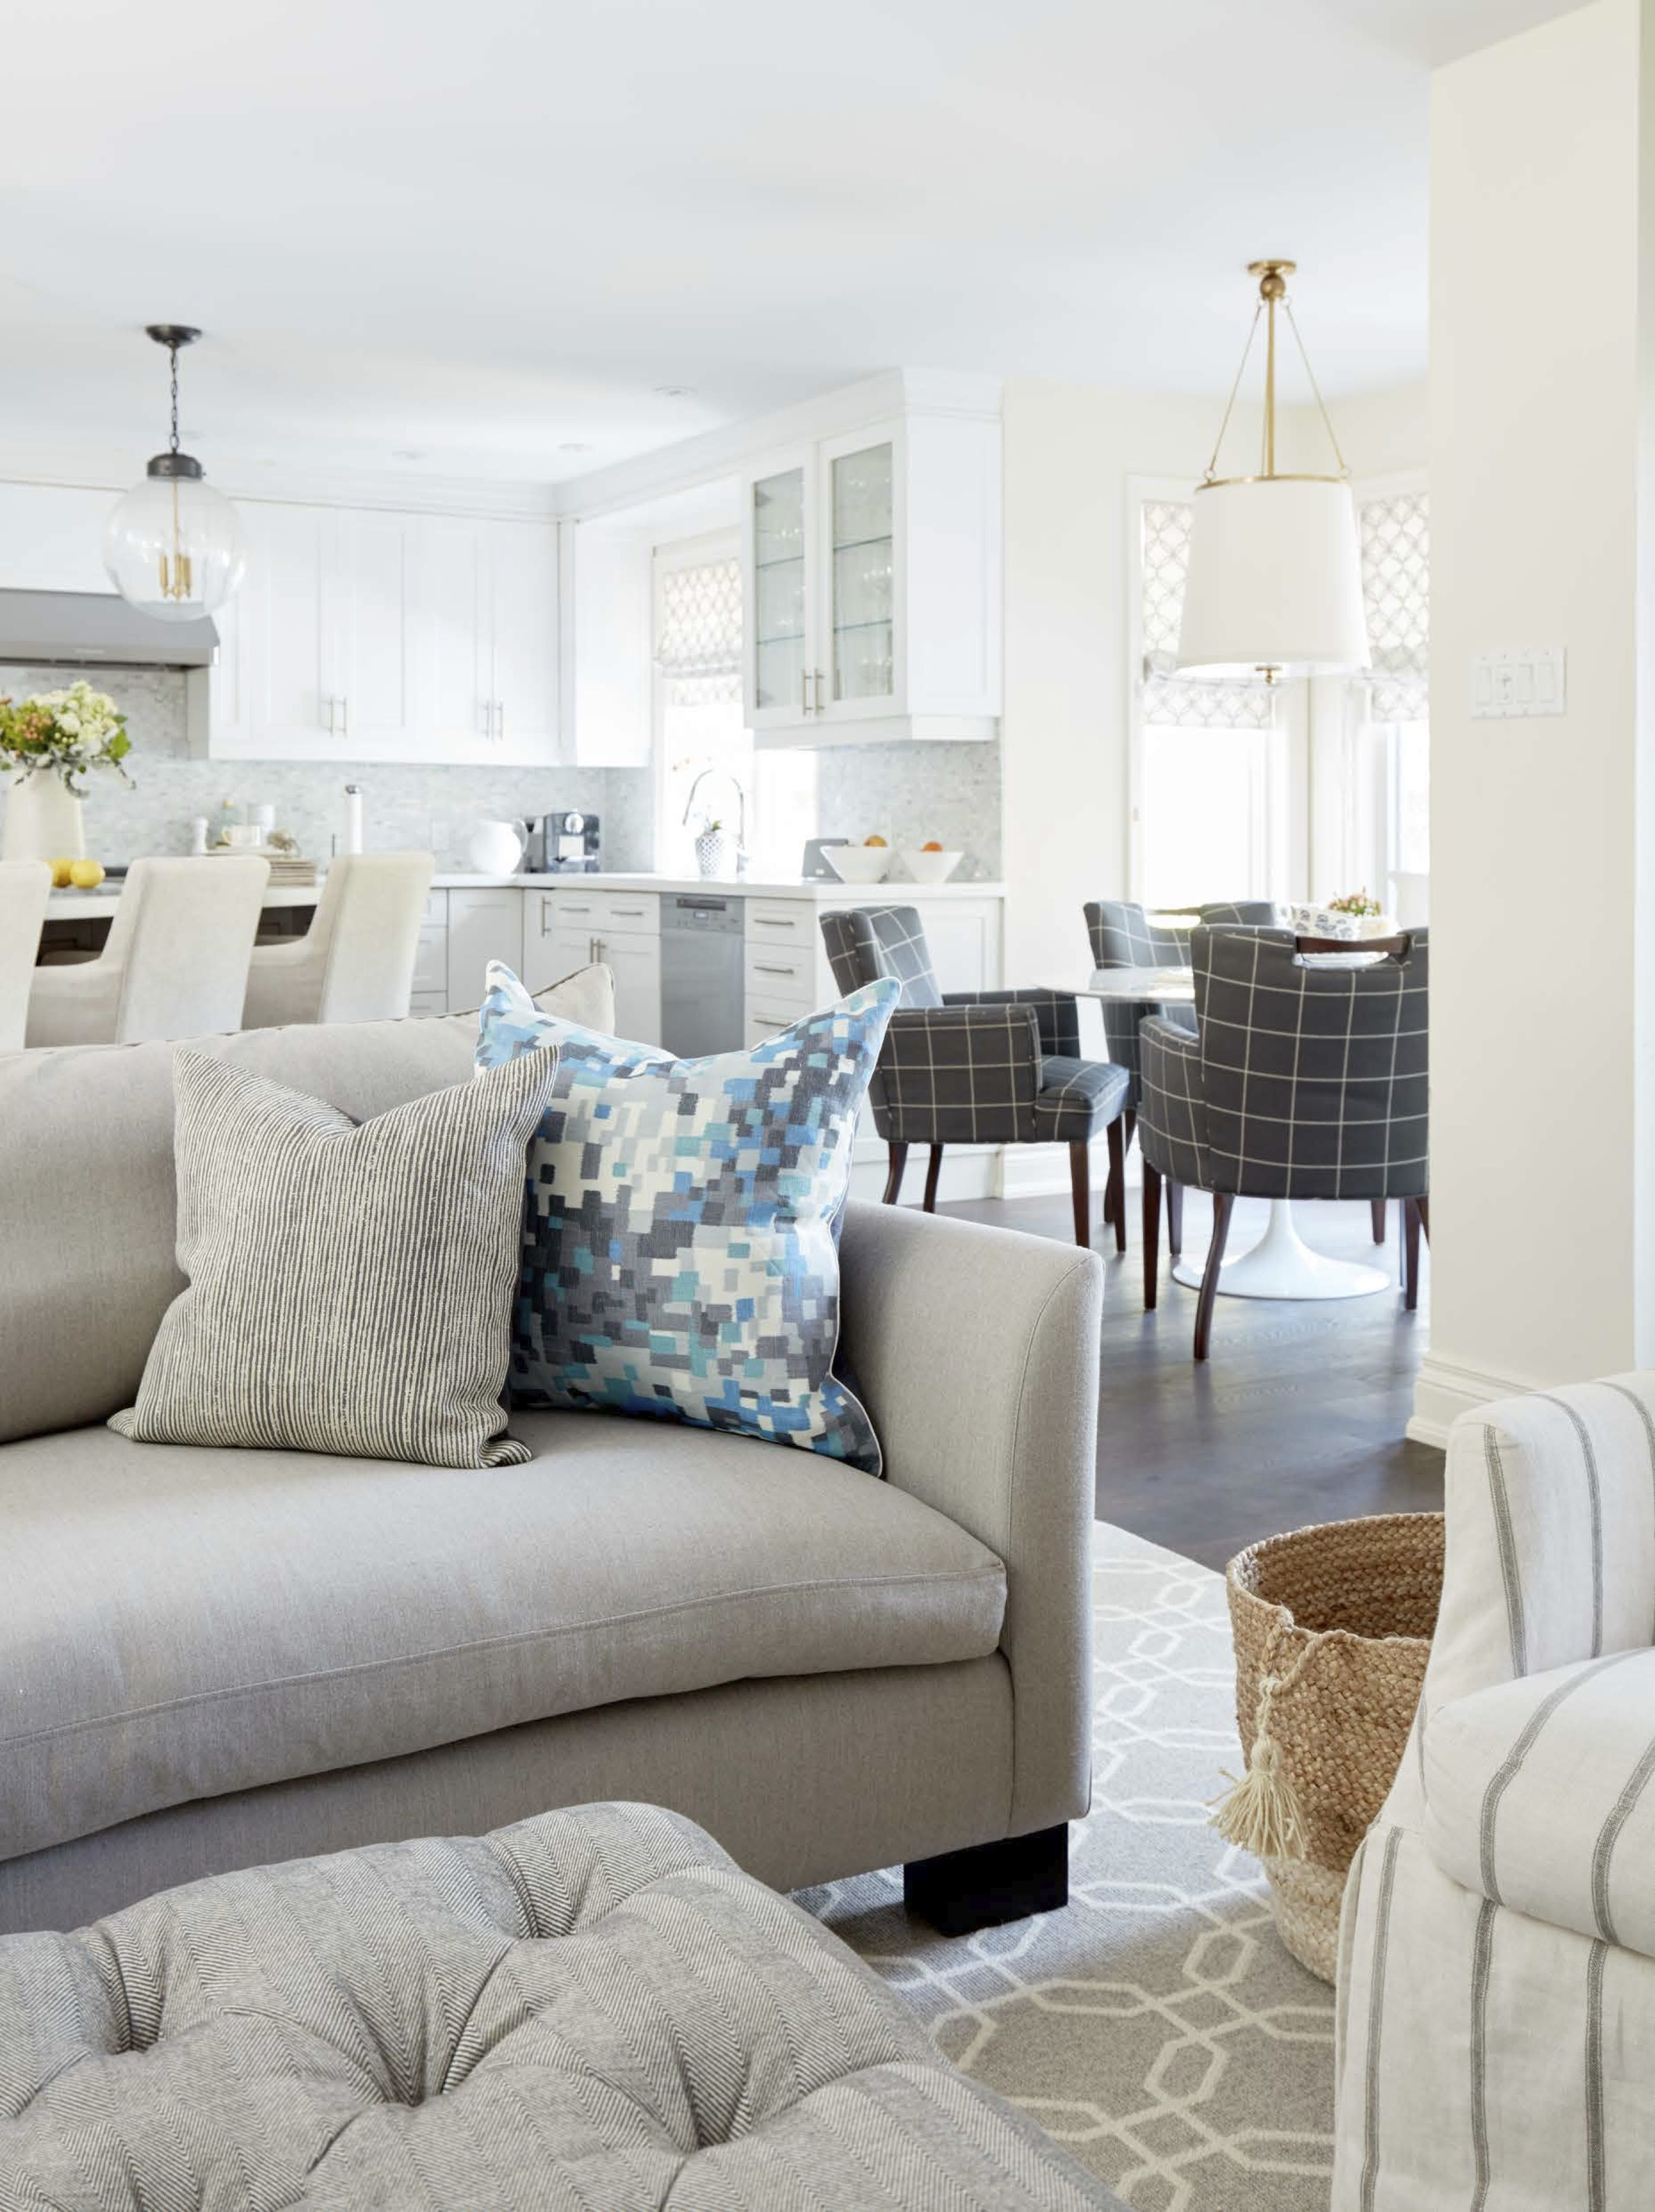 Kitchen Family Room Designs: Brendan Rd. Family Room And Kitchen. Design By Feasby